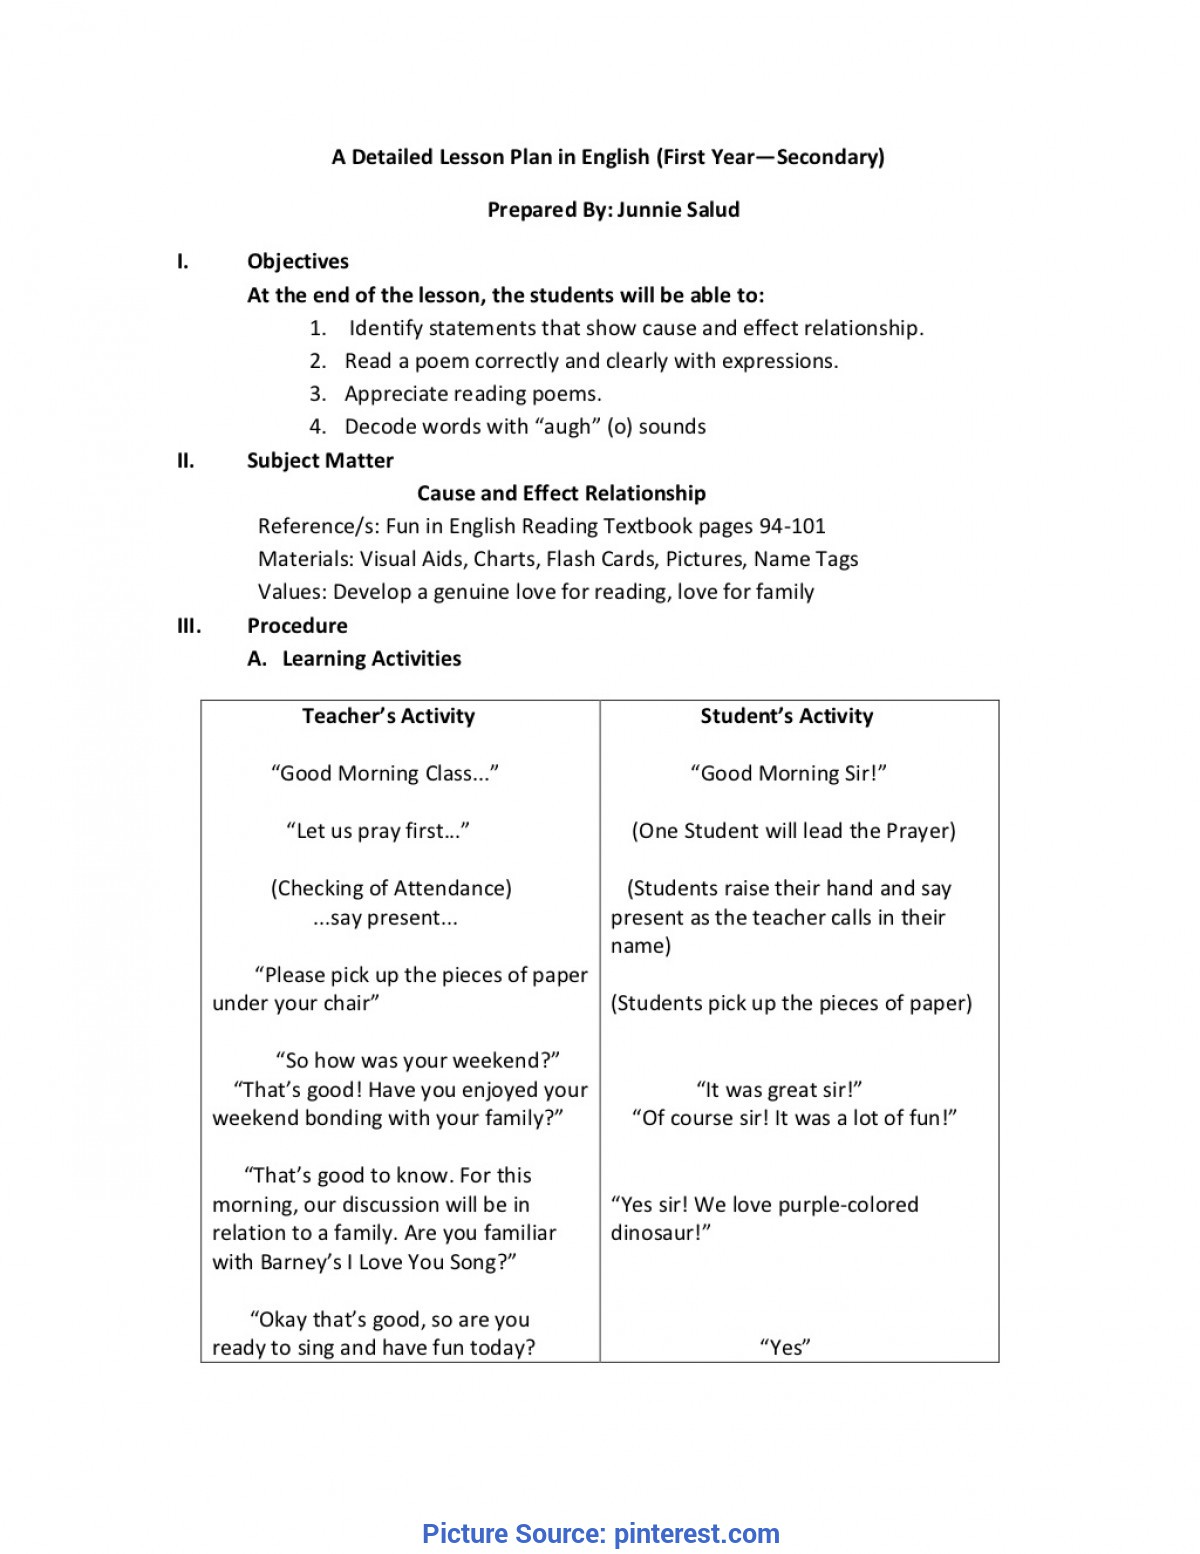 fresh sample detailed lesson plan in english grade 1 detailed lesson plan english math science filipino by junni 4978 - Kindergarten Science Lesson Plans